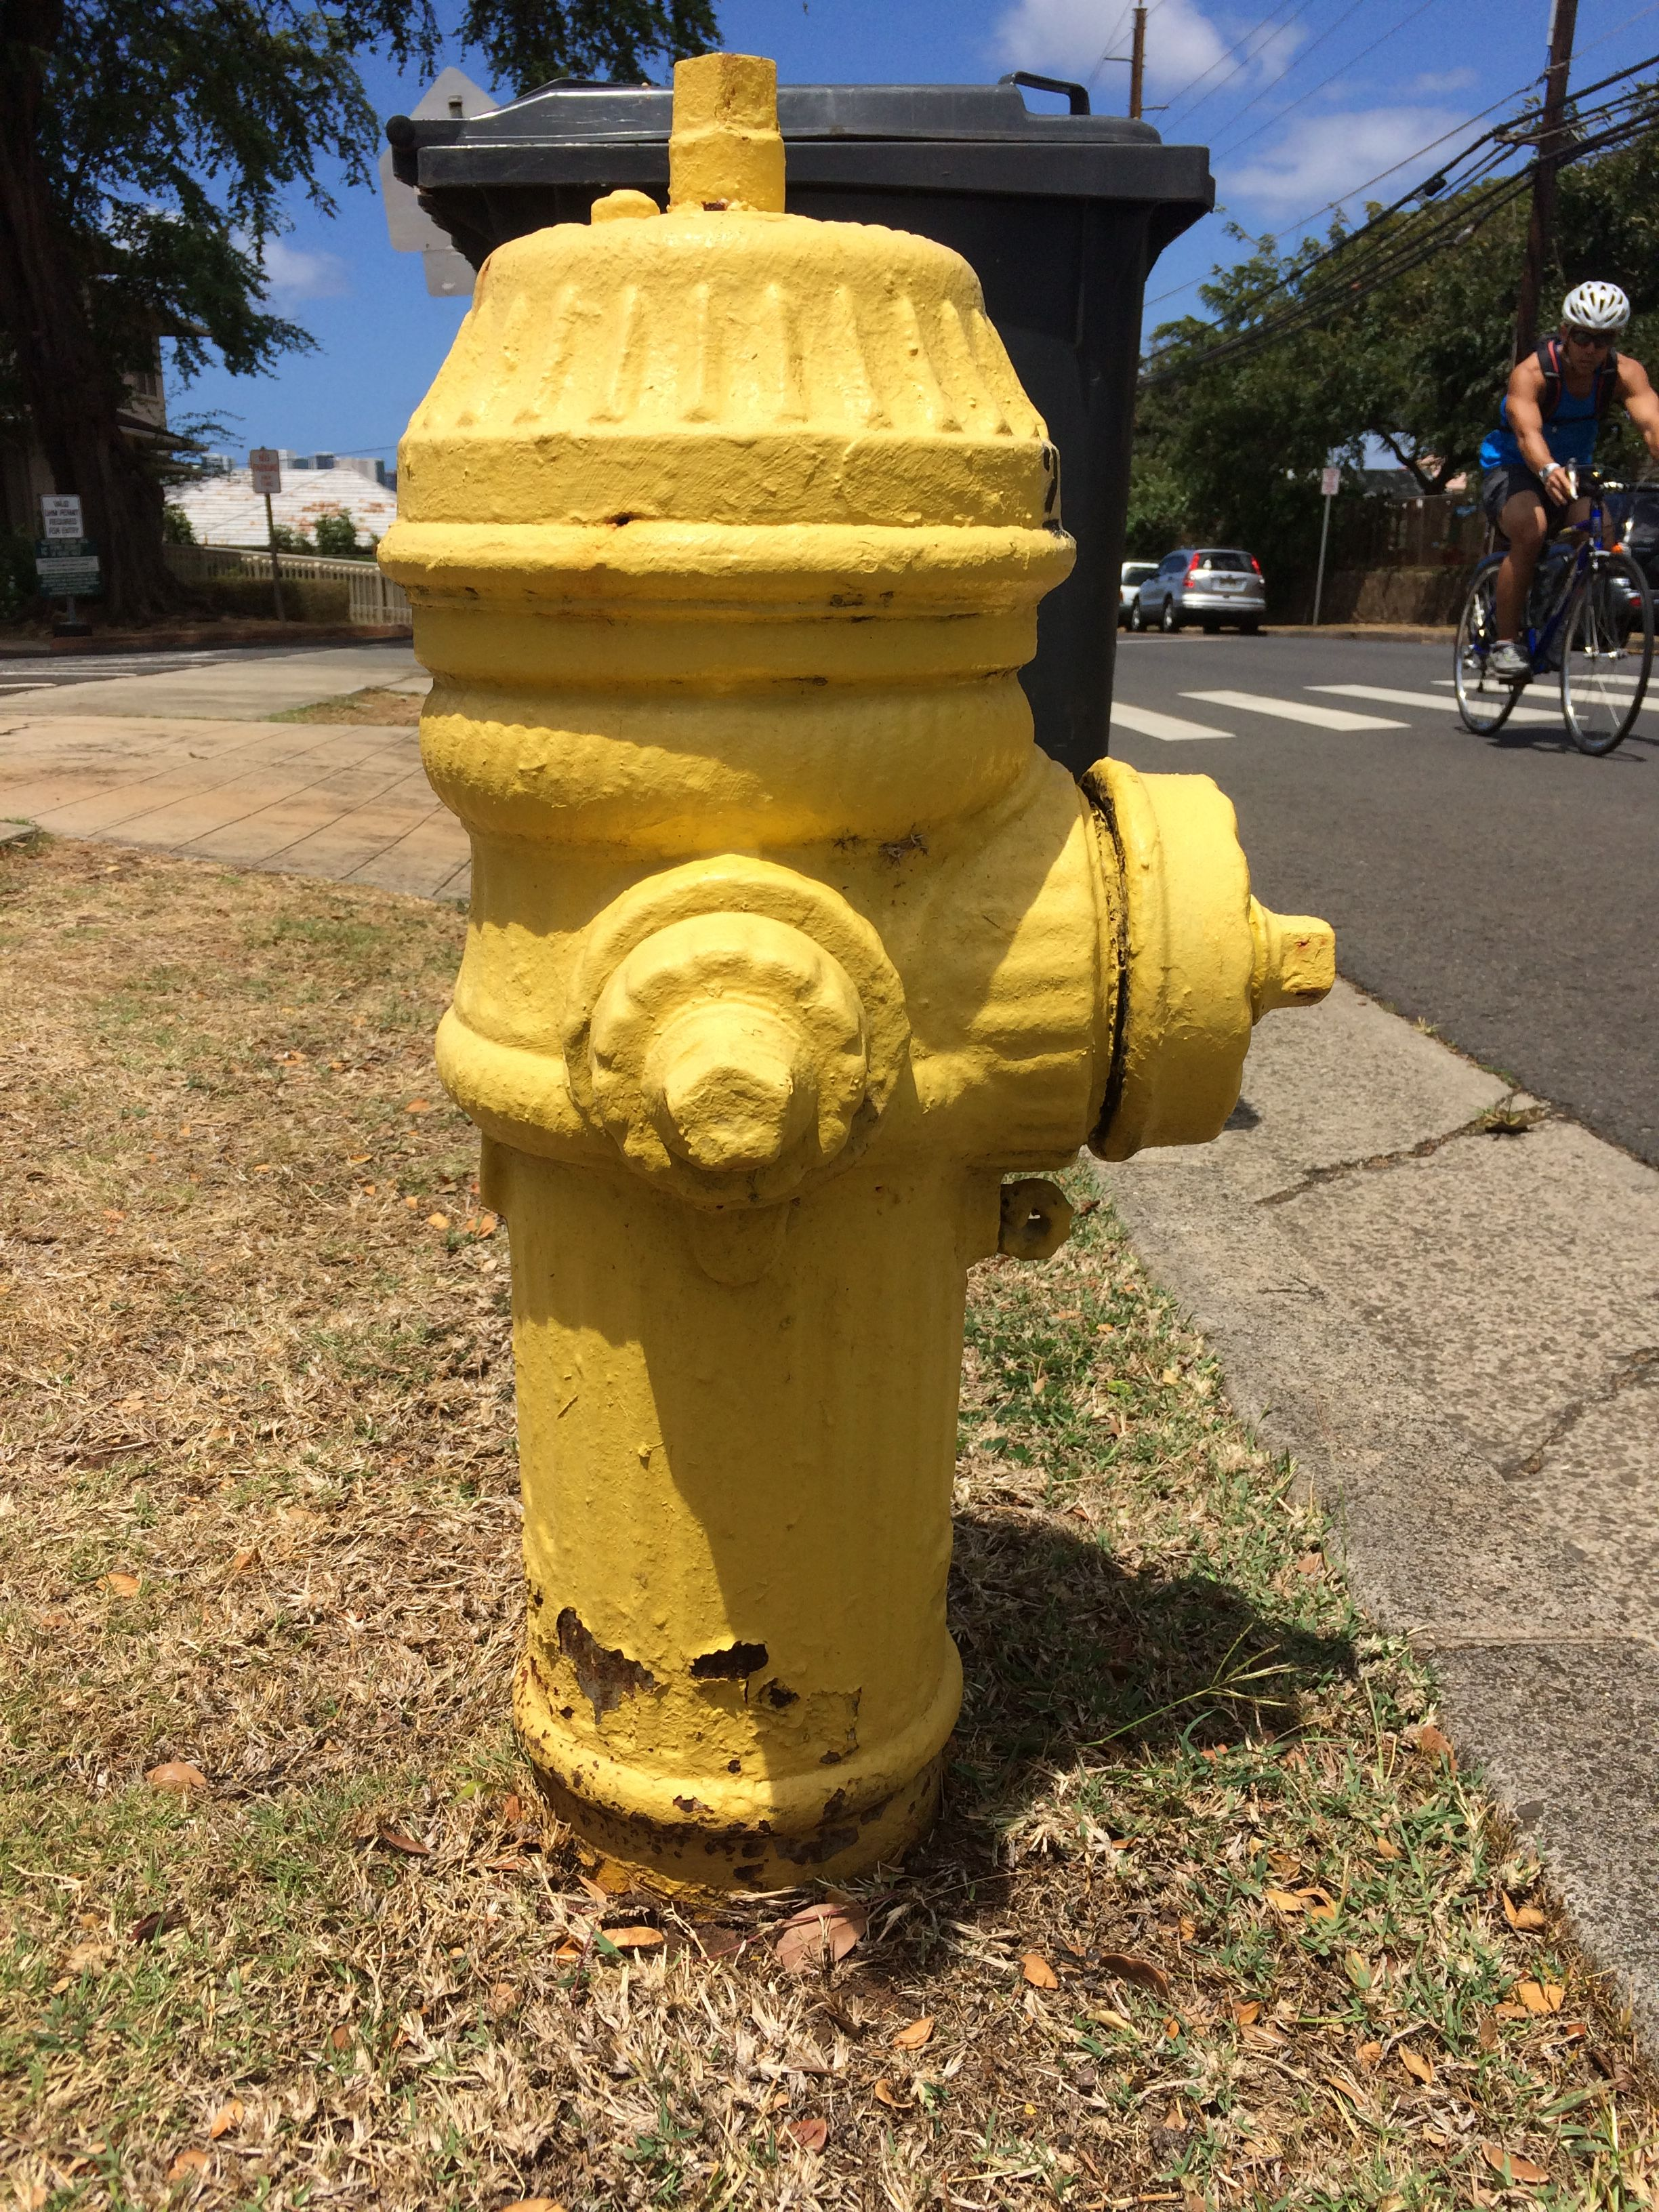 This hydrant was sent to me by Sam Jimenez and is located